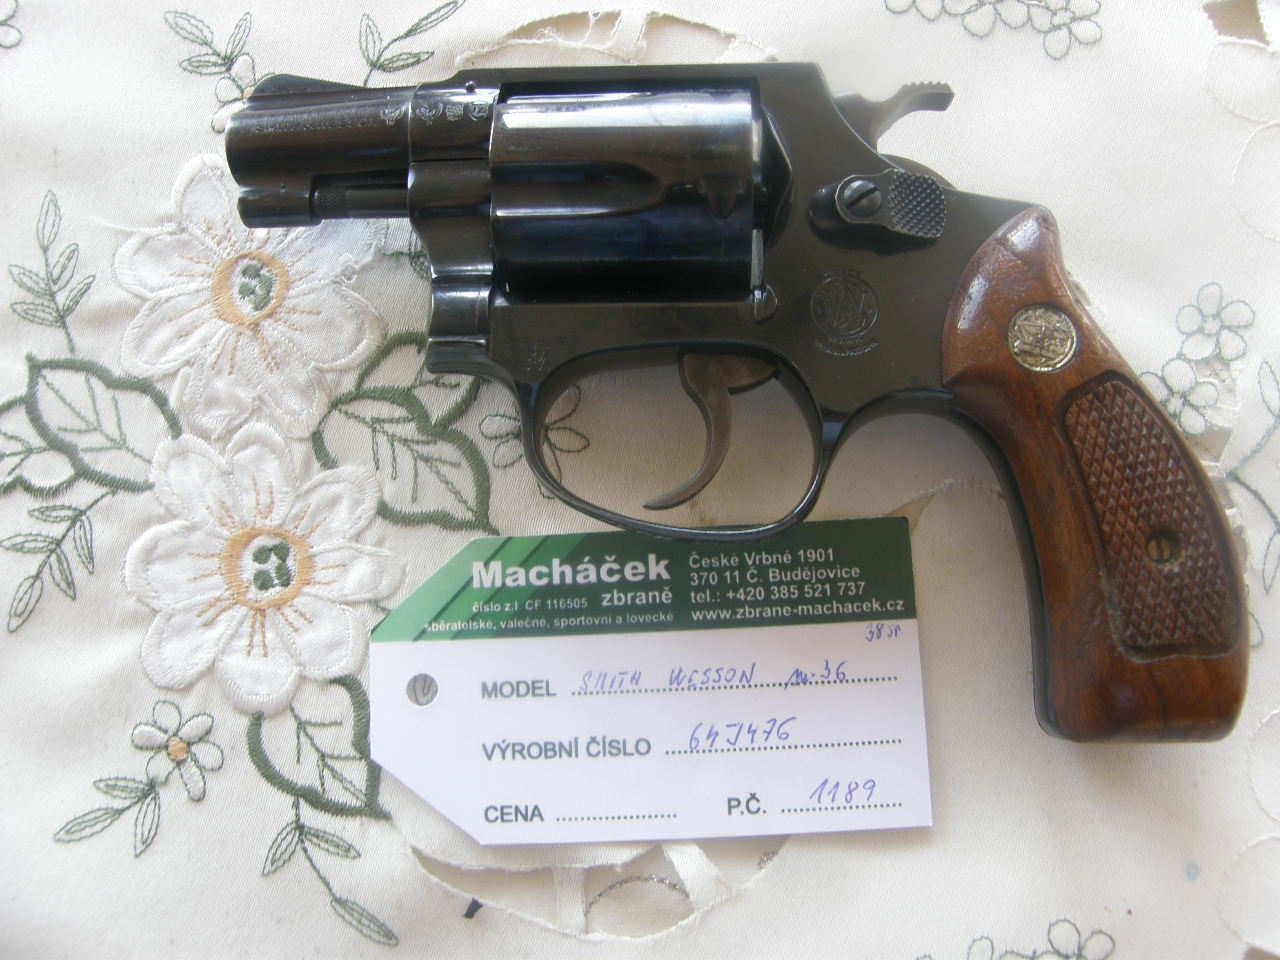 Revolver Smith Wesson Mod. 36 v.č. 64J476-3 r. 38 Sp.